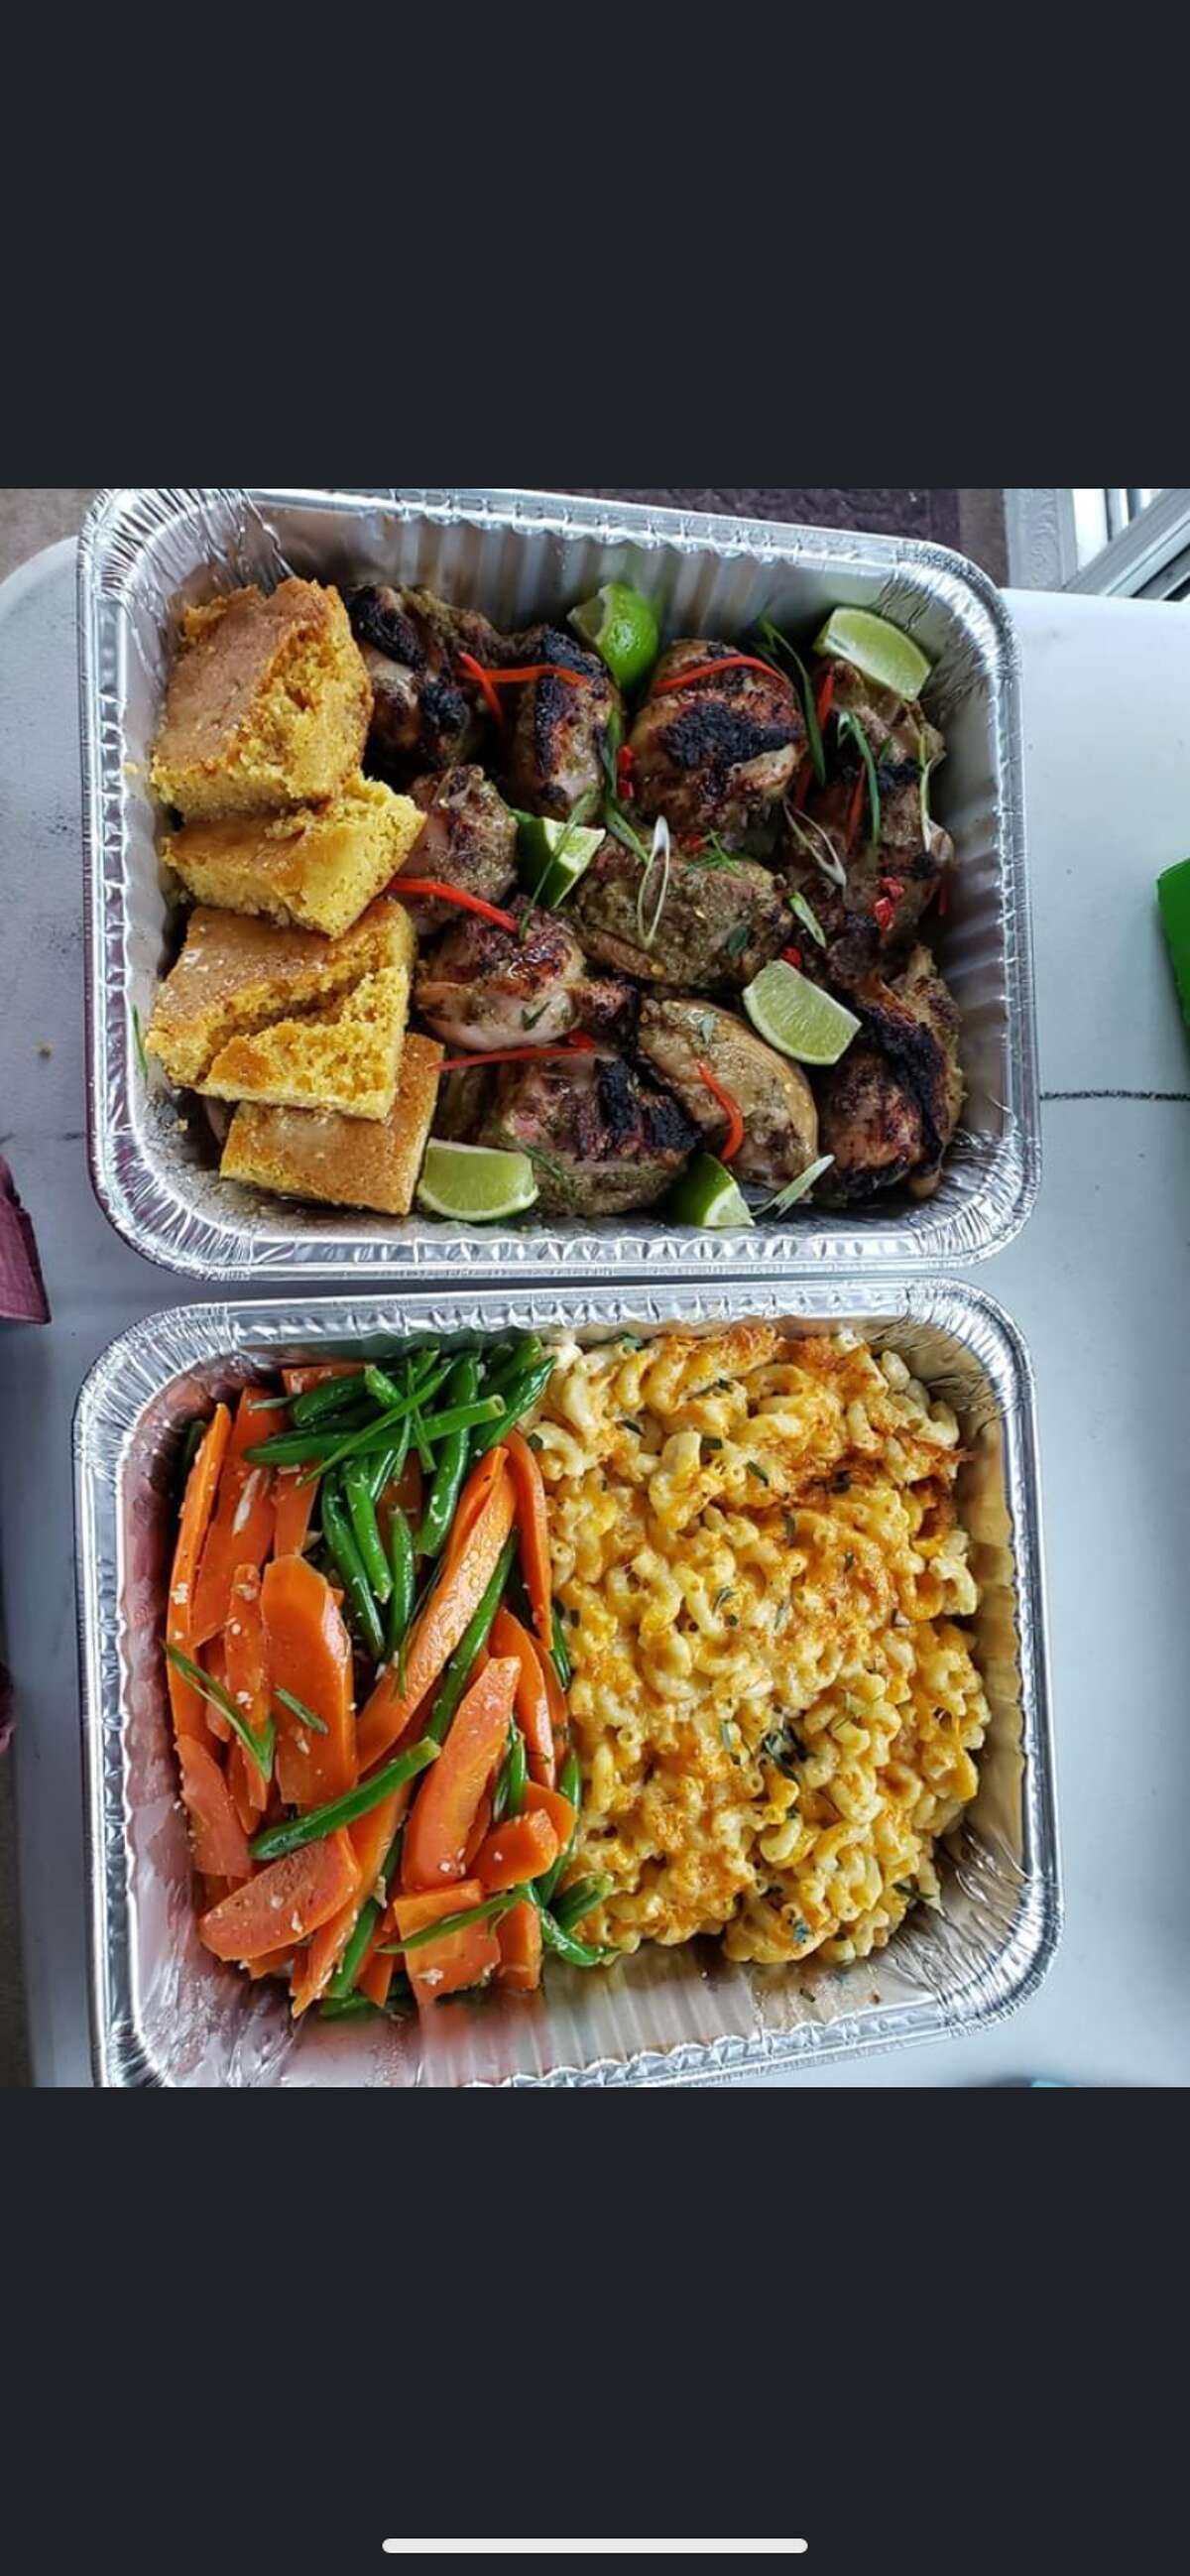 A family meal from Savoy Taproom in Albany, which includes jerk chicken and three sides.